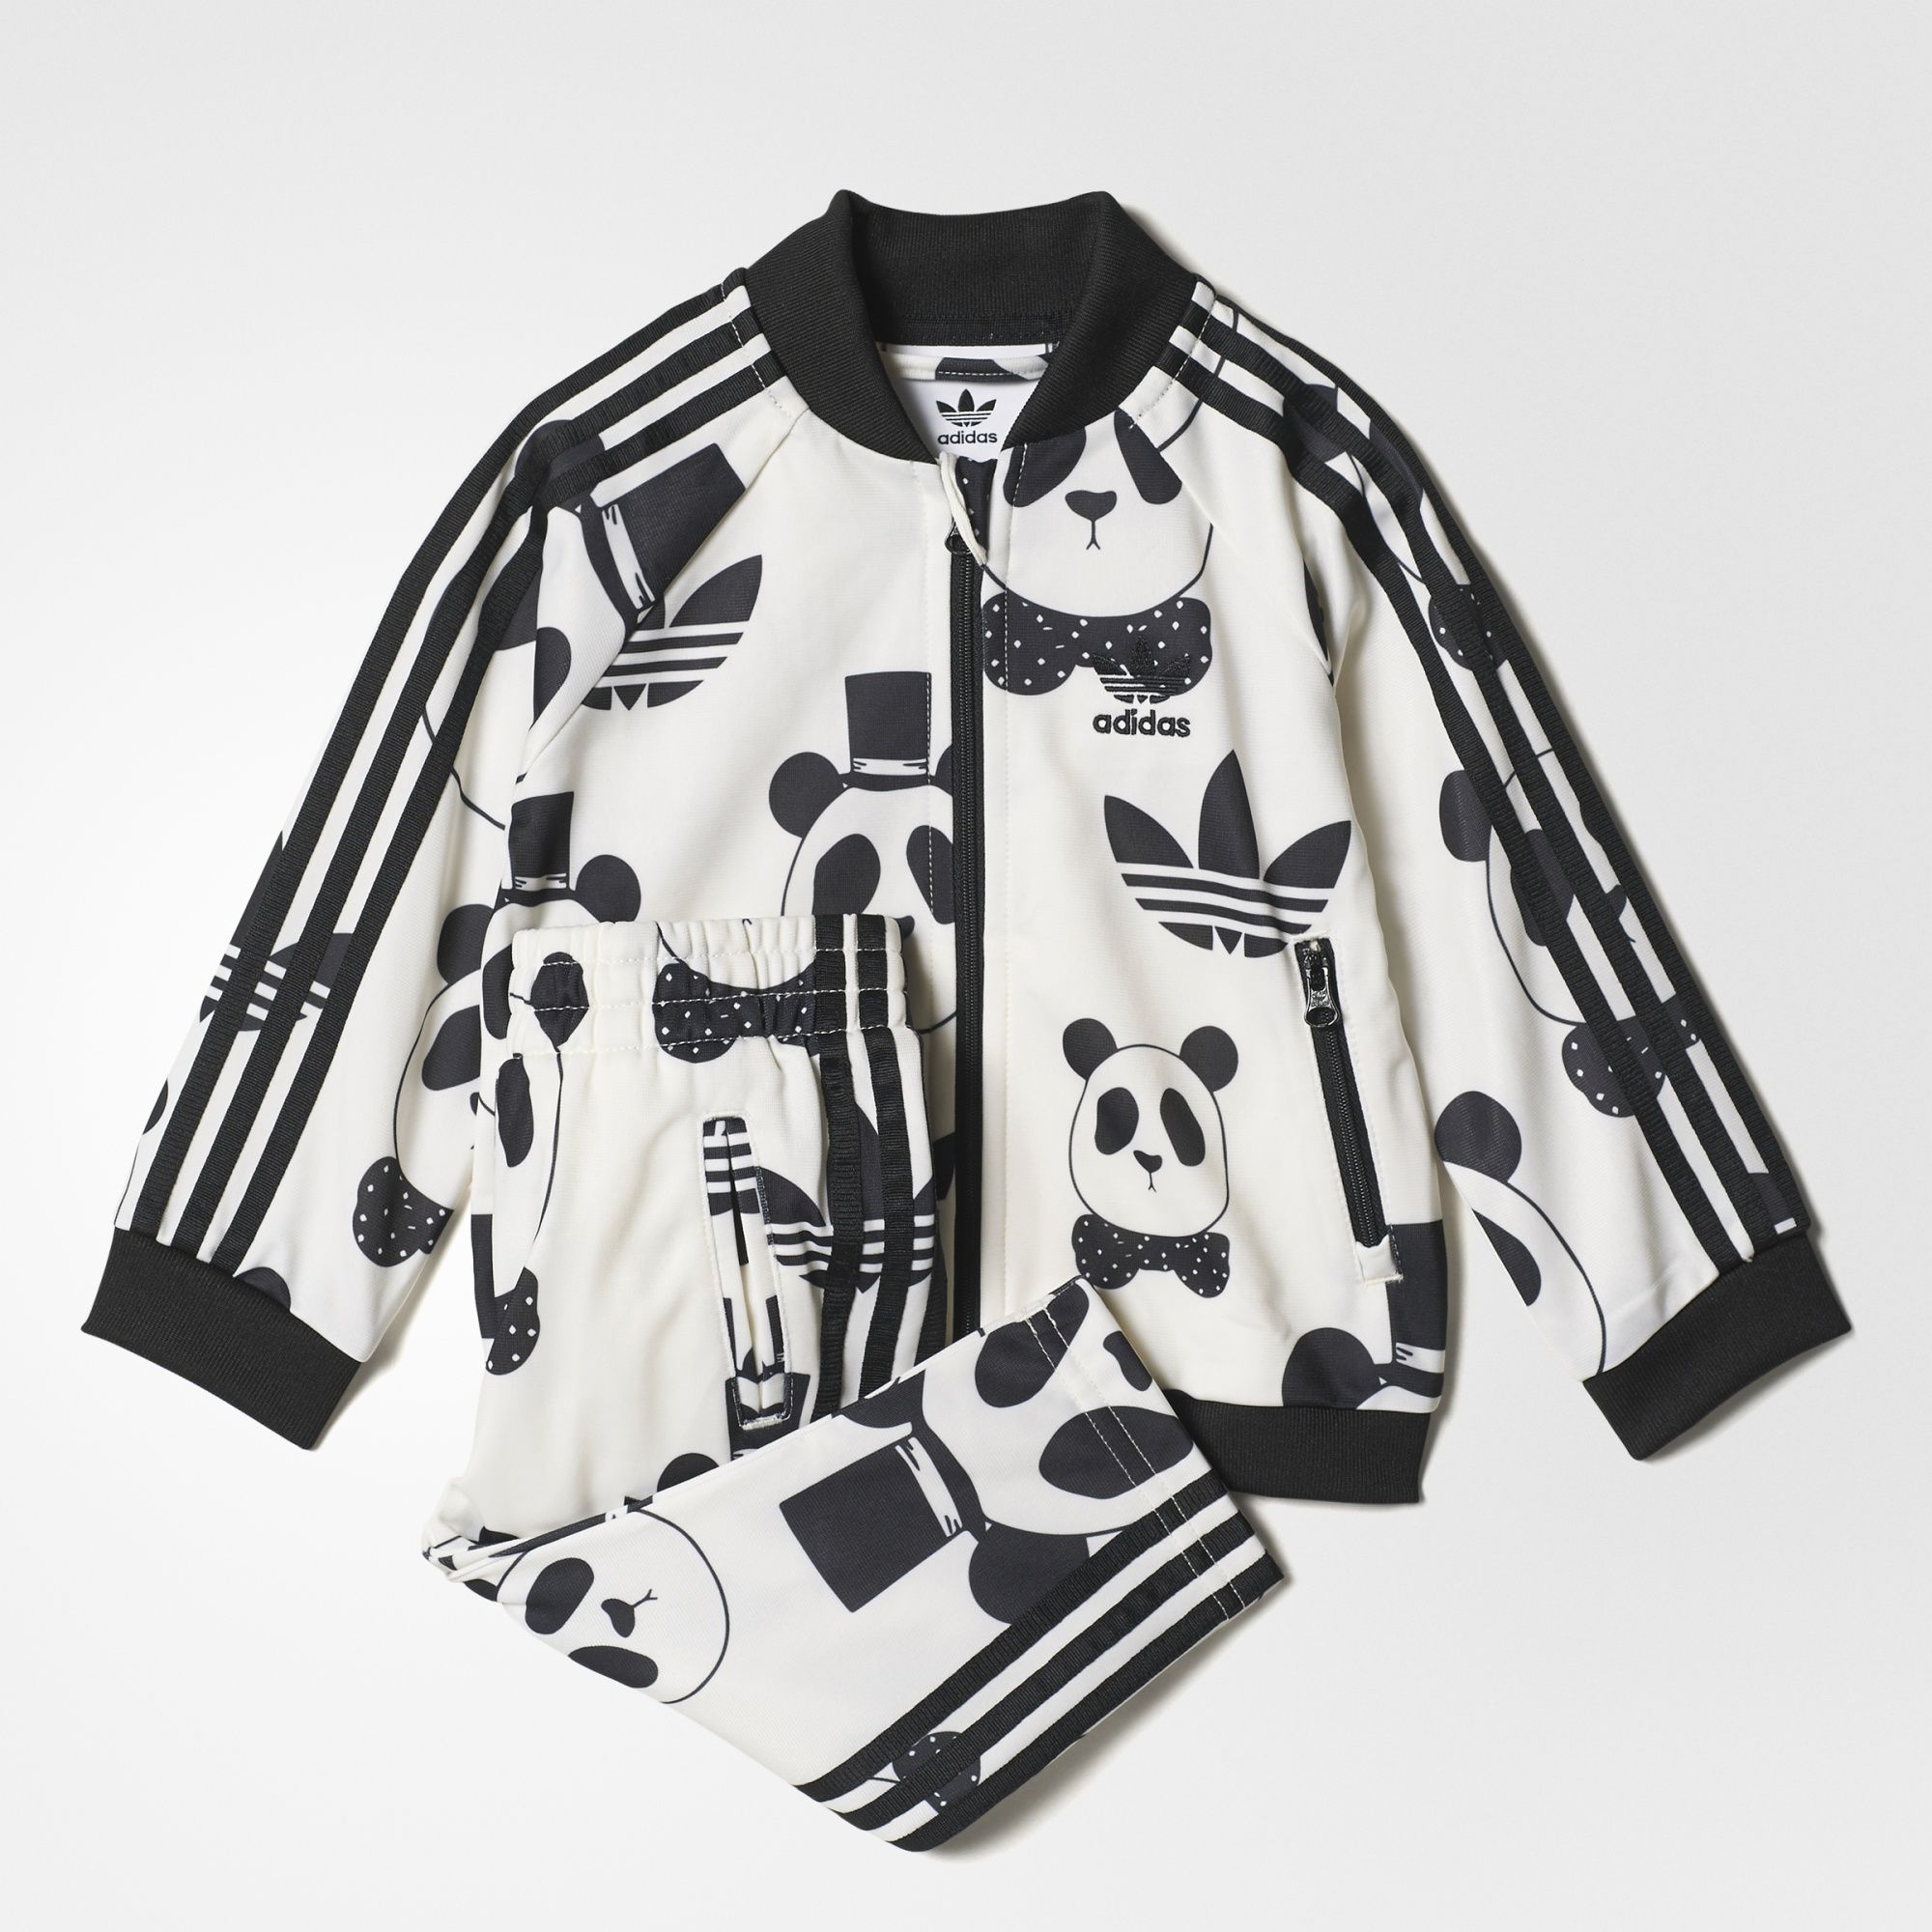 Adidas Mini Rodini Sst Track Suit Panda Outfit Kids Suits